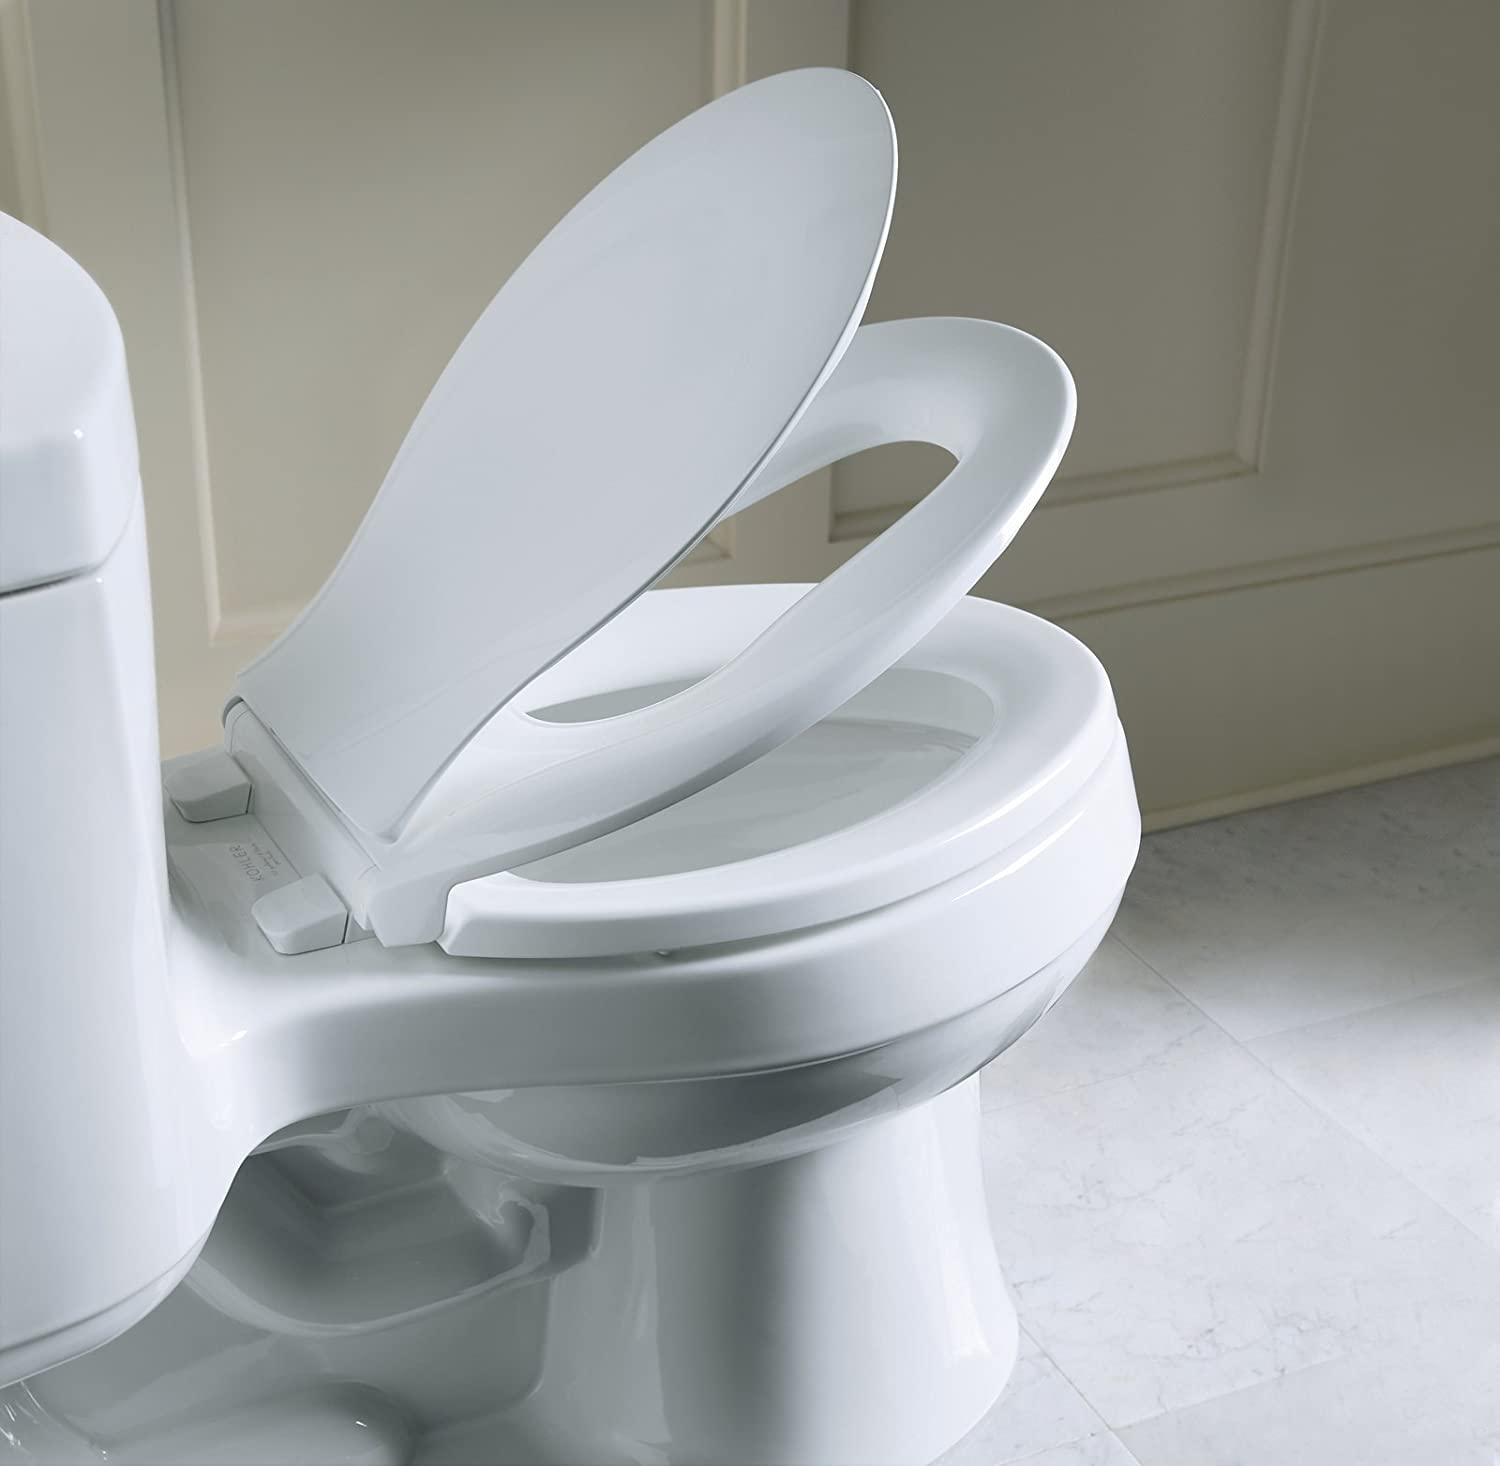 Magnificent Most Regular Toilet Seats Preferred By Many Of Us Toilet Machost Co Dining Chair Design Ideas Machostcouk